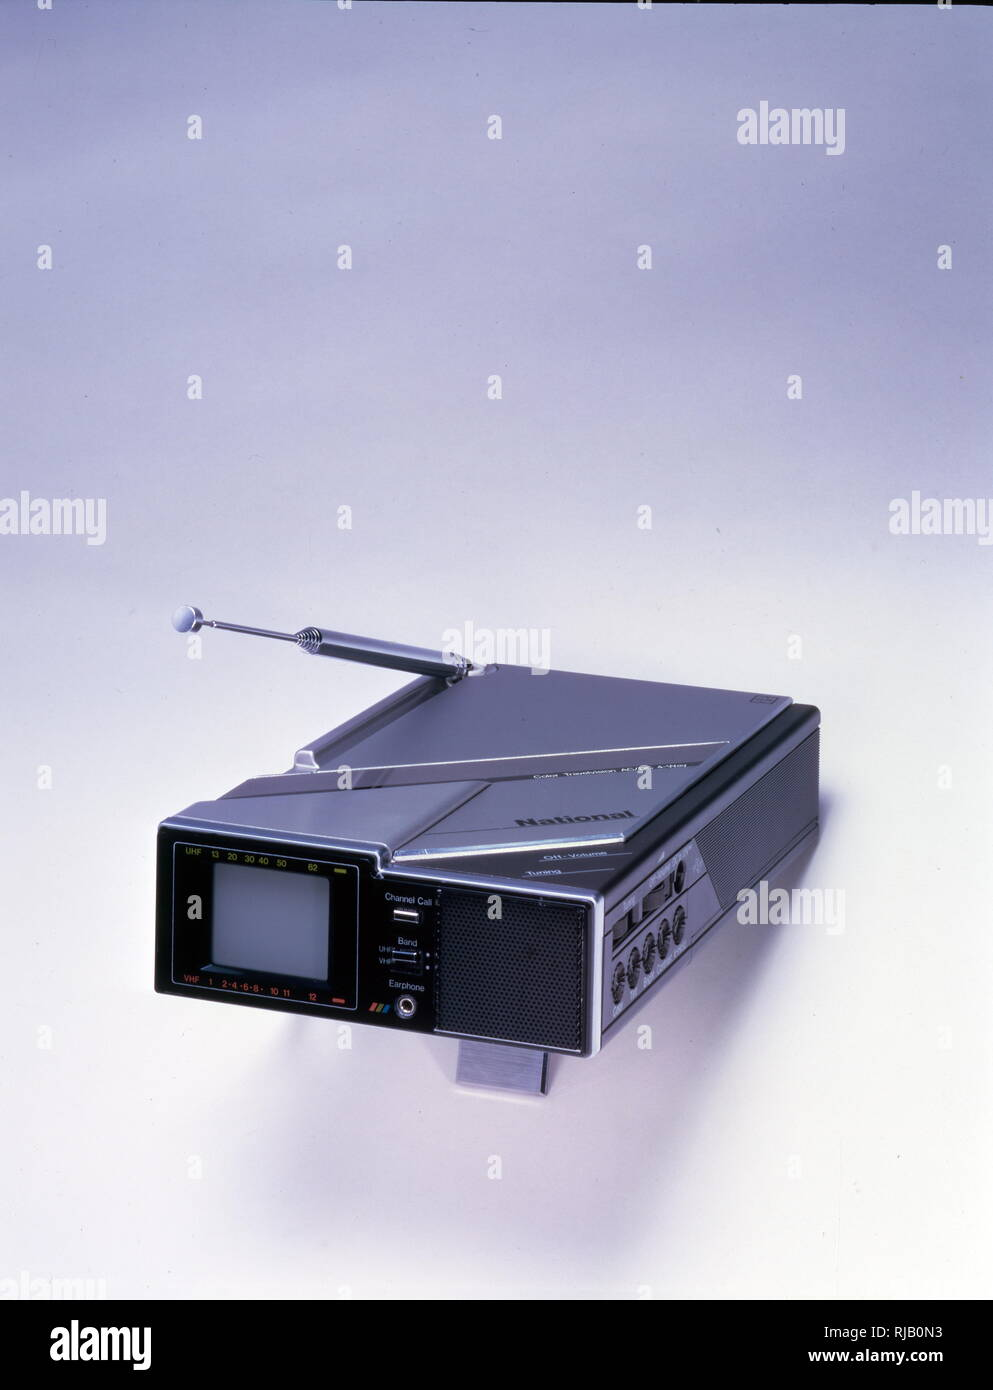 Panasonic, Matsushita, National, Colour Travelvision CT-101; with US VHF/UHF Tuner, magnifier lens, built-in antenna. manufacturing date Nov. 1984 - Stock Image